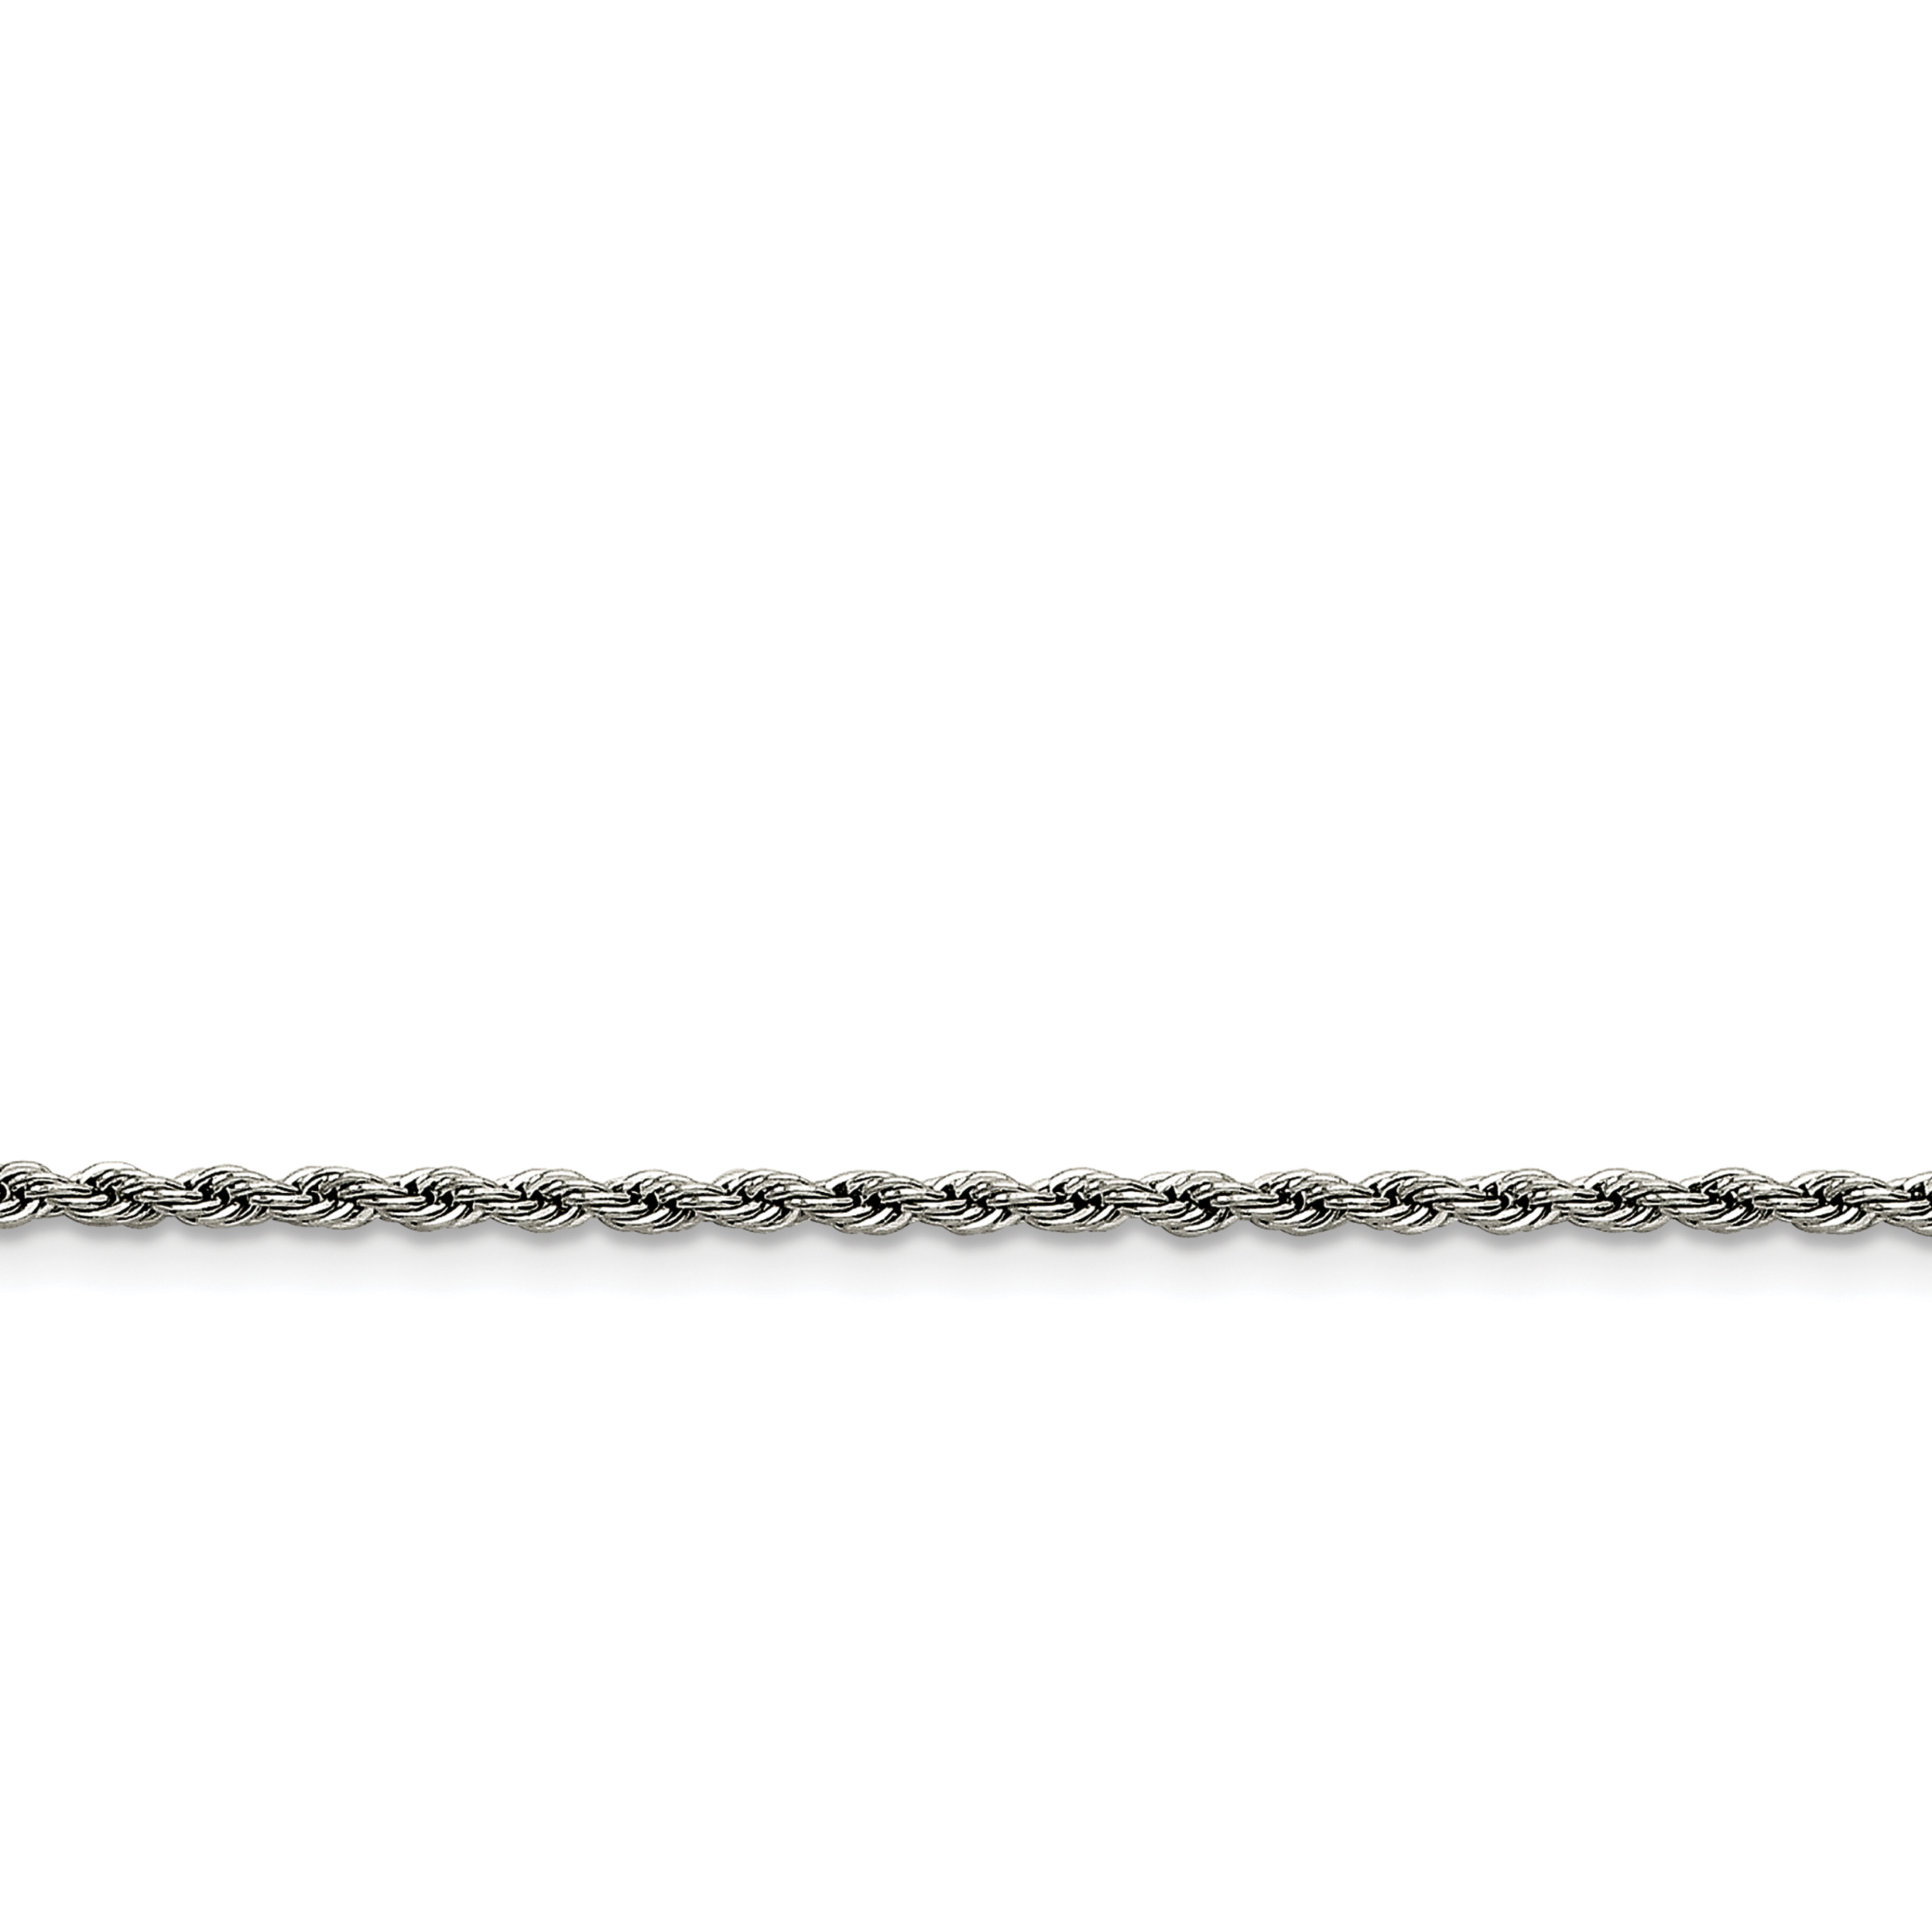 5 Pieces Stainless steel 2.4mm Ball chain necklace ***custom lengths*** Hypoallergenic